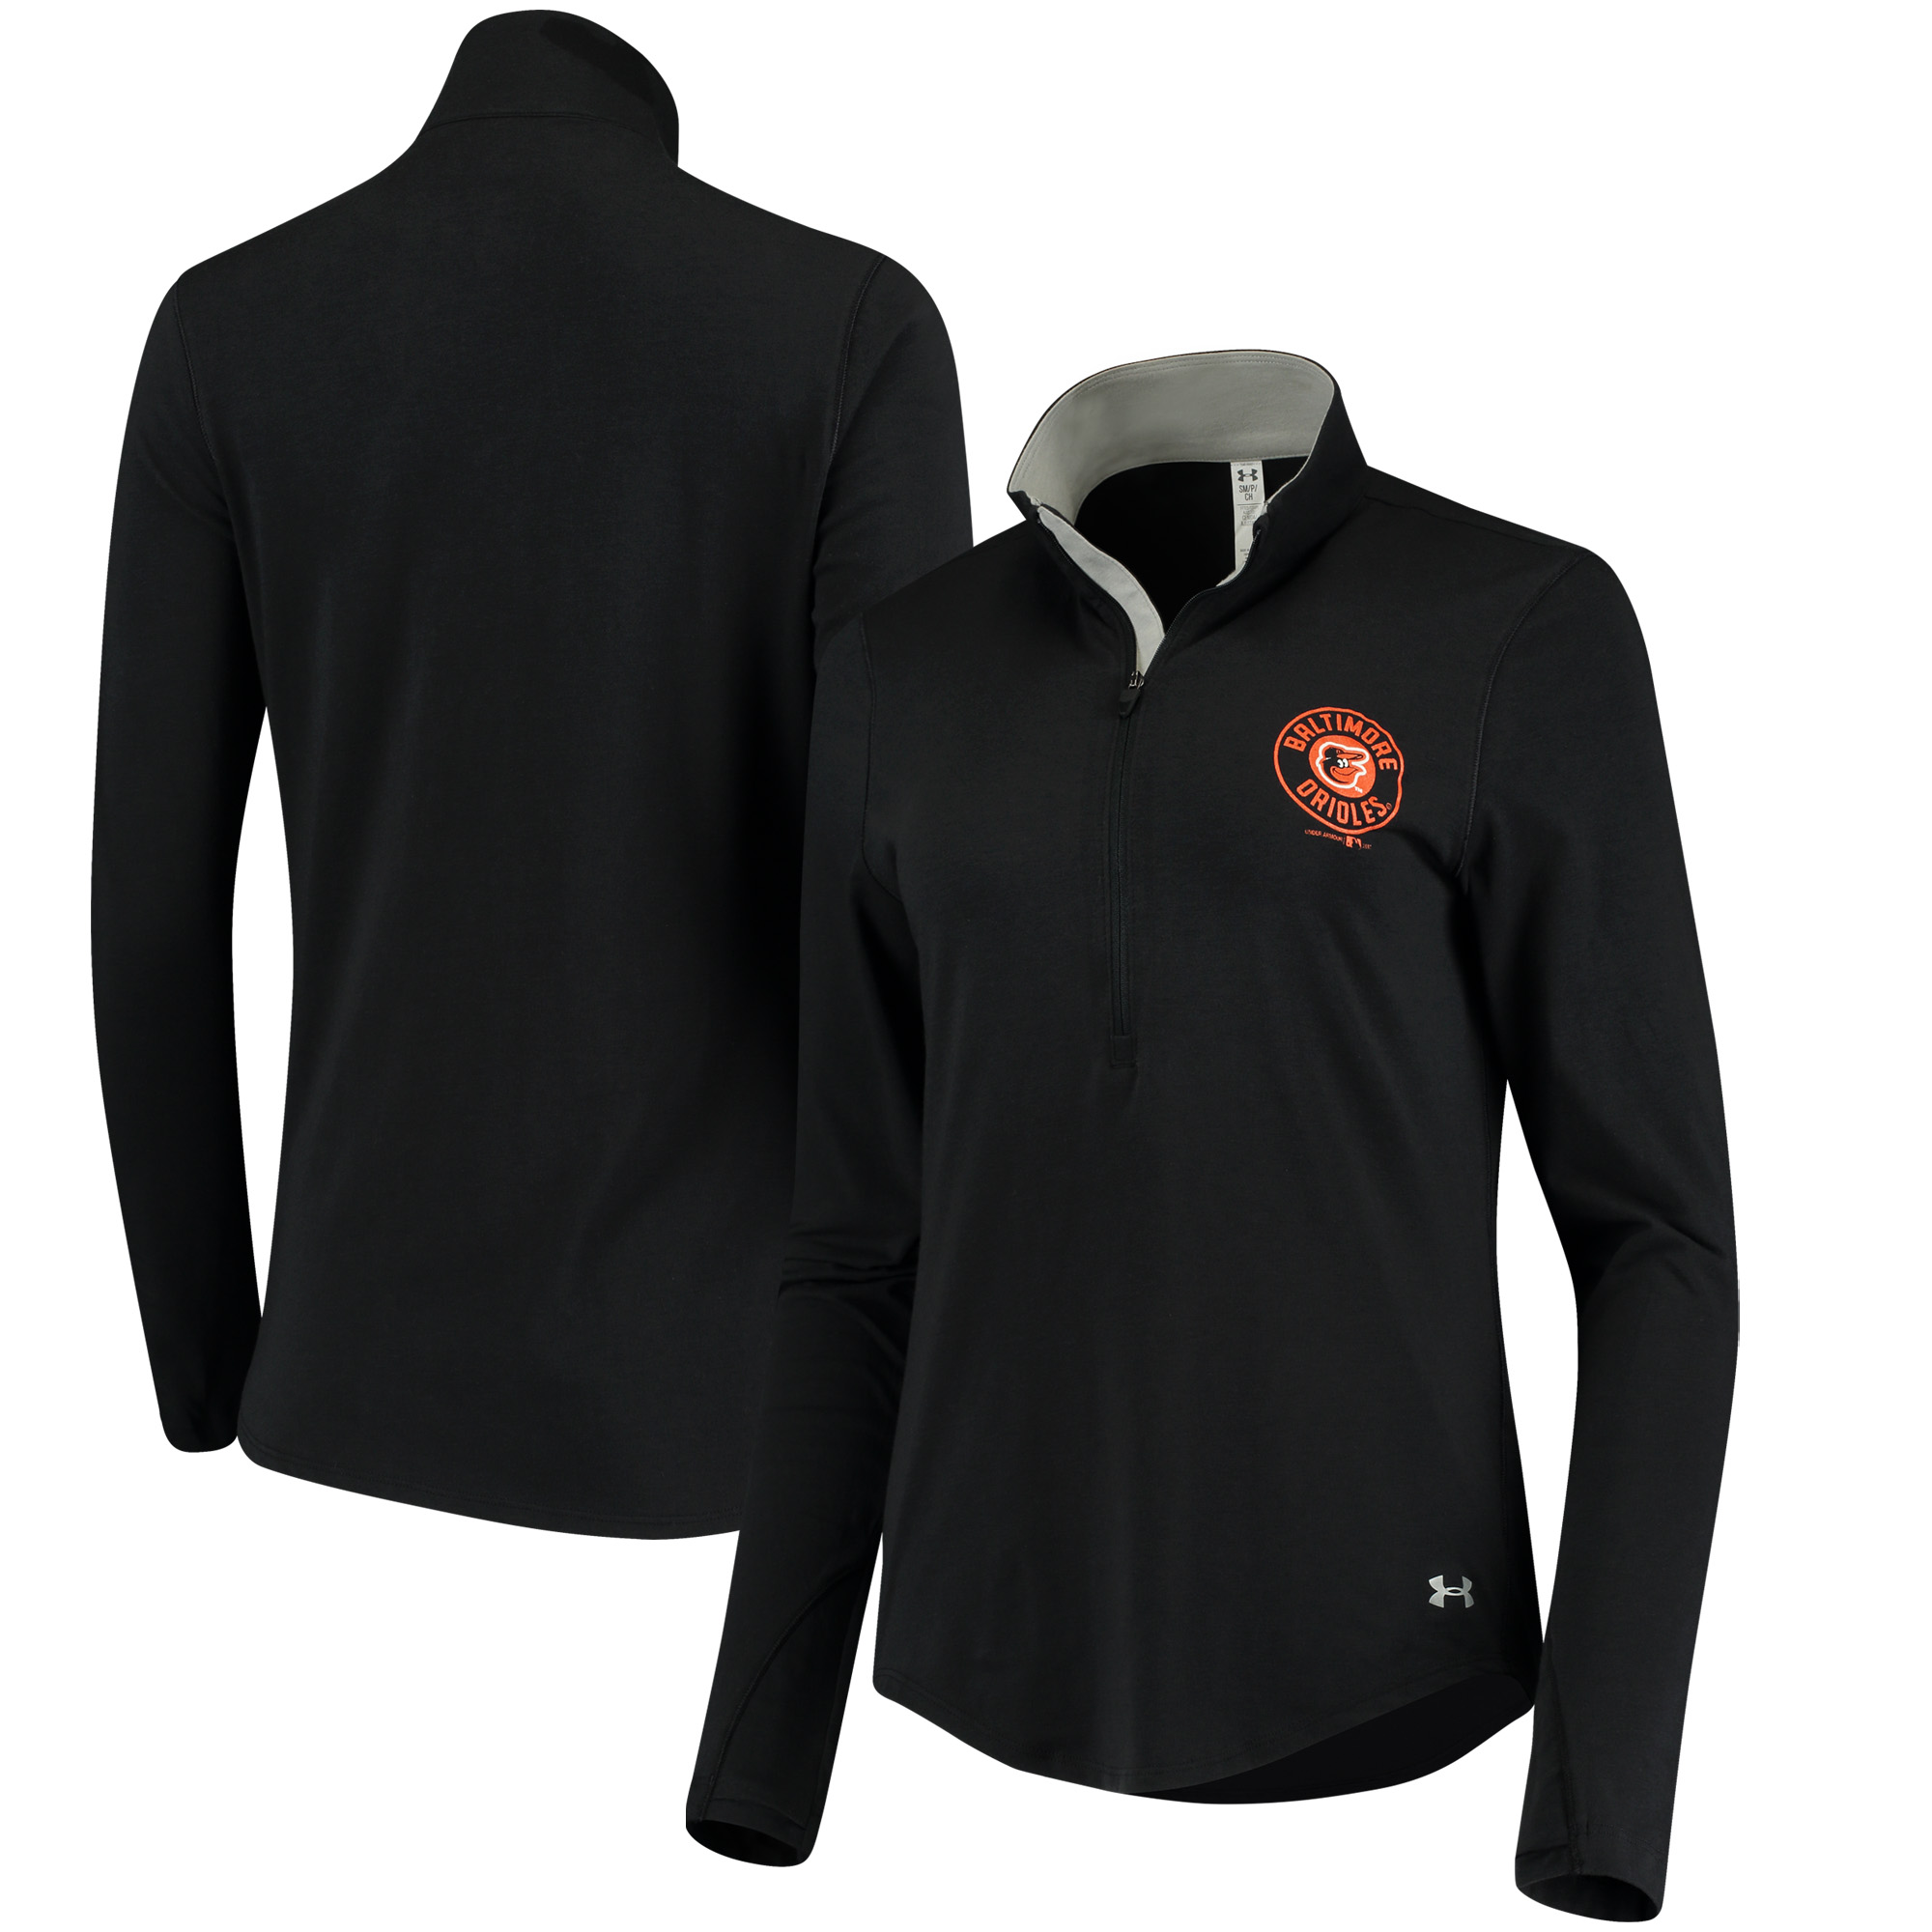 Baltimore Orioles Under Armour Women's Charged Cotton Half-Zip Pullover Jacket - Black